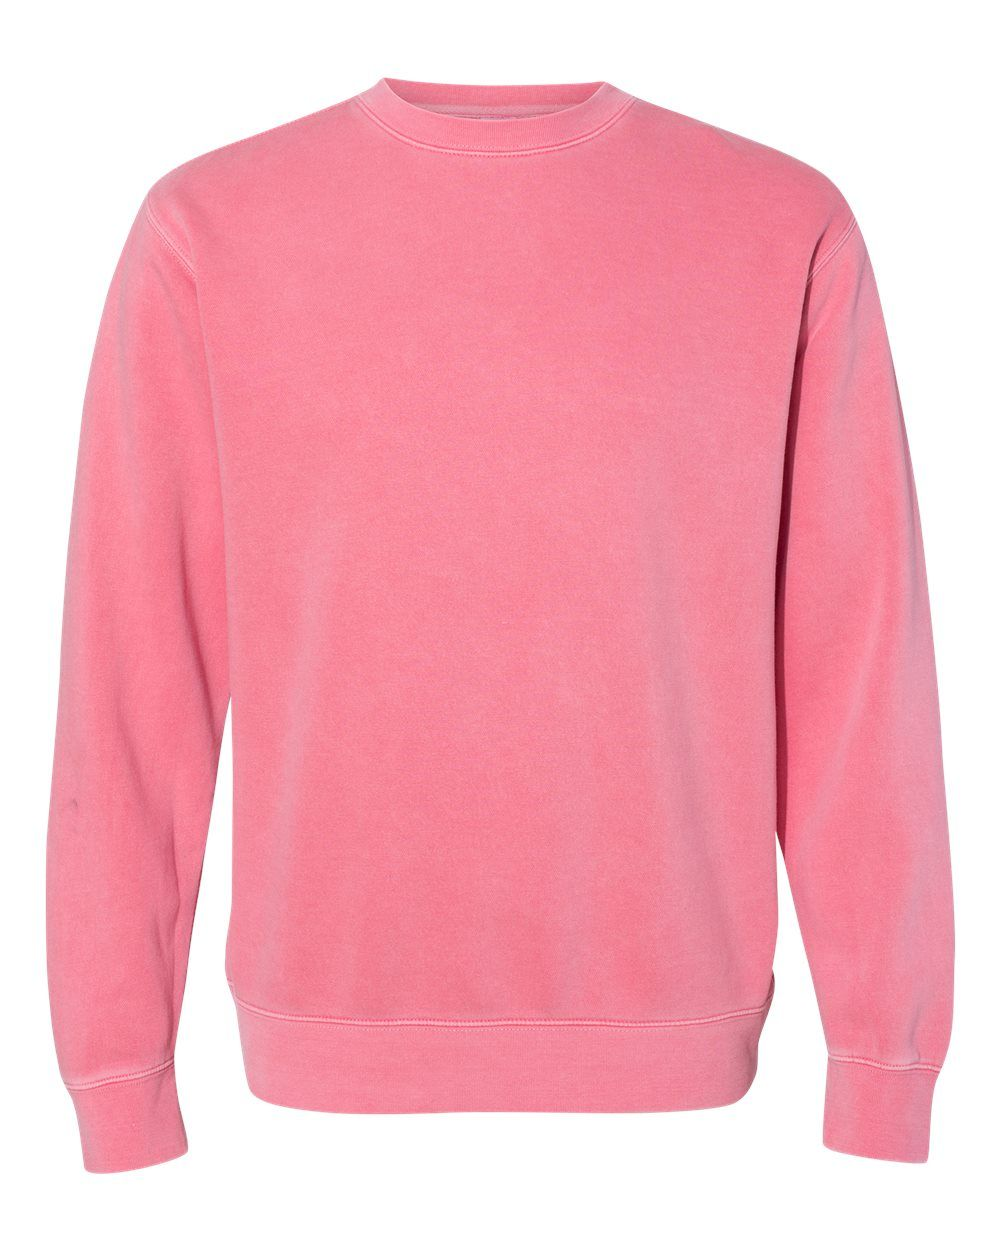 Independent Trading Co Heavyweight Pigment Dyed Crewneck Sweatshirt Prm3500 In 2021 Online Shopping Clothes Crew Neck Sweatshirt Sweatshirts [ 1250 x 1000 Pixel ]